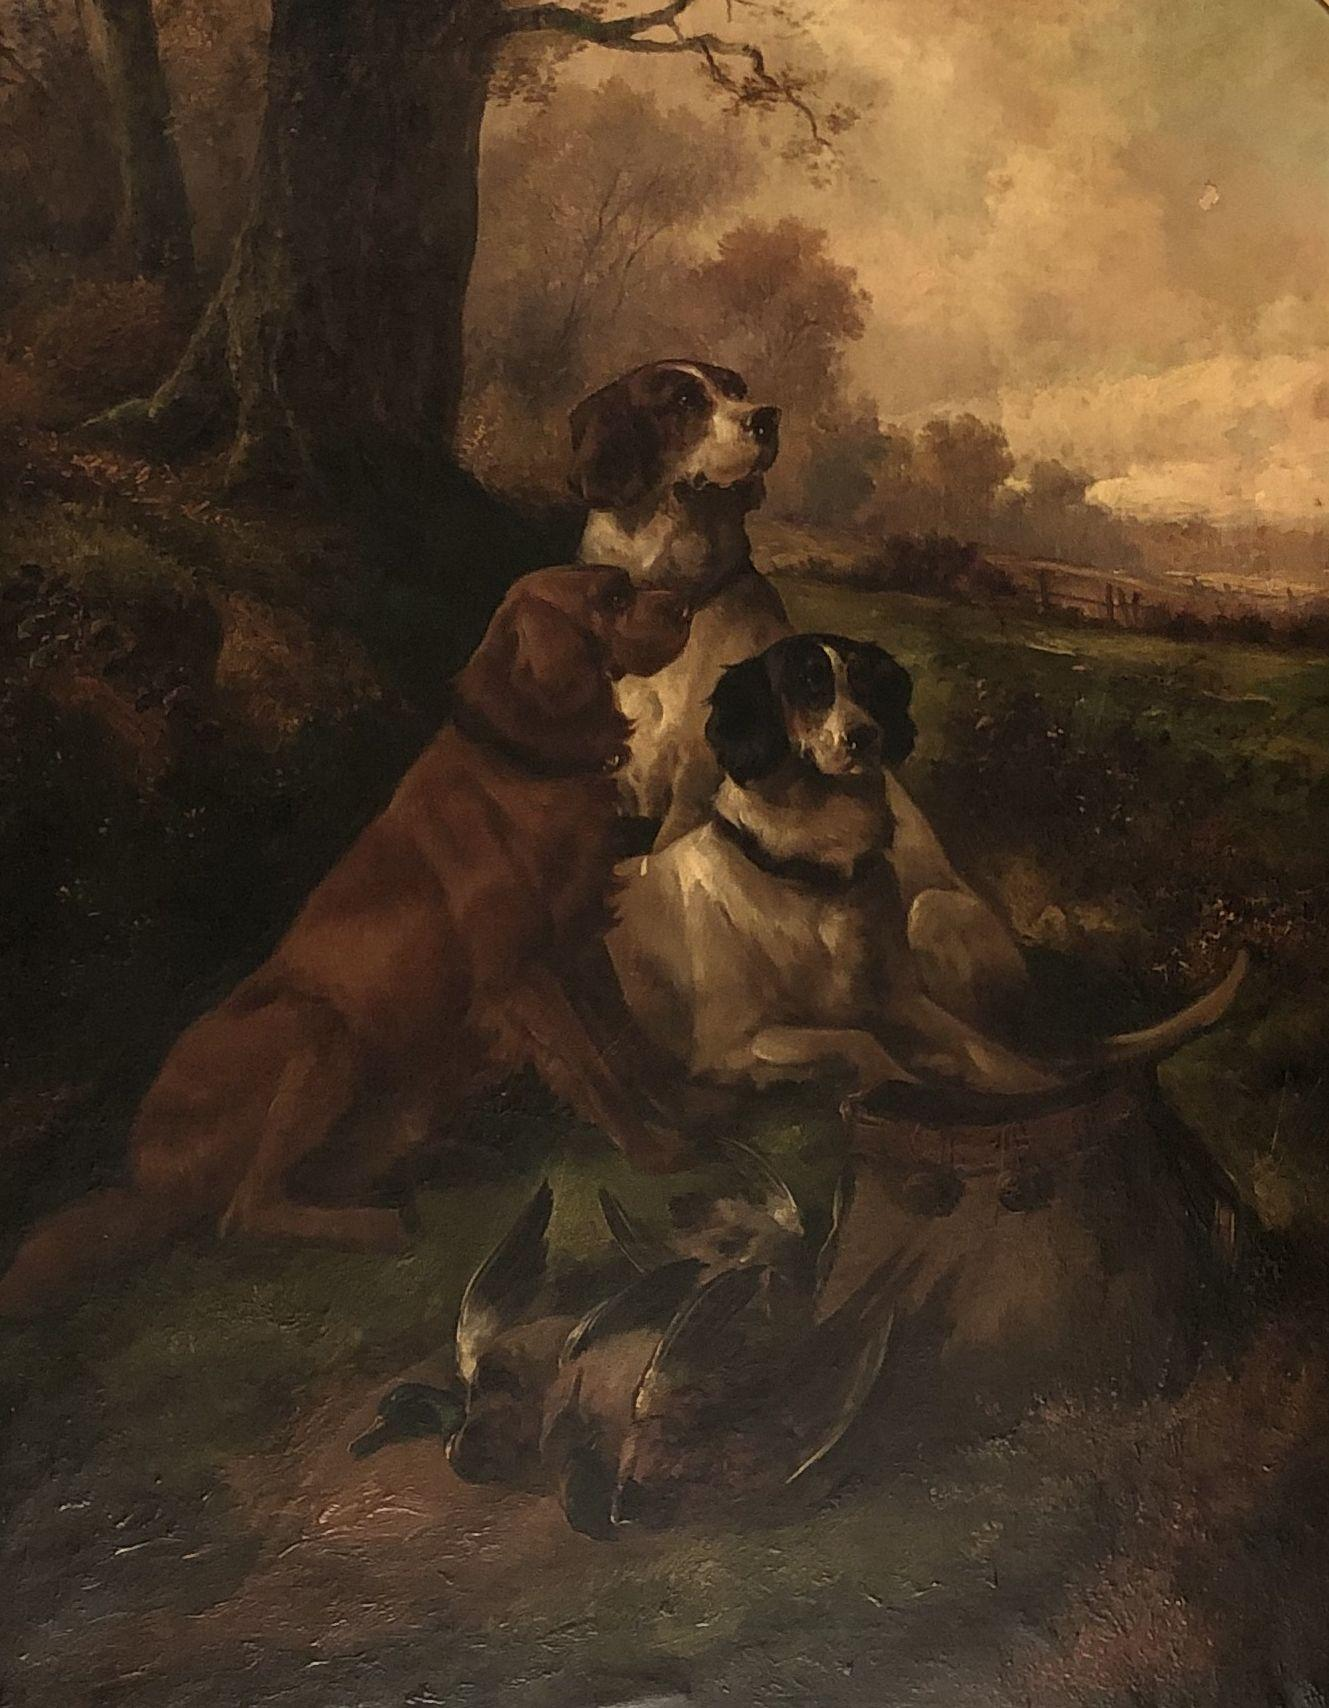 GIFFORD JOHN. Hunting dogs at rest. Oil on canvas. Signed.